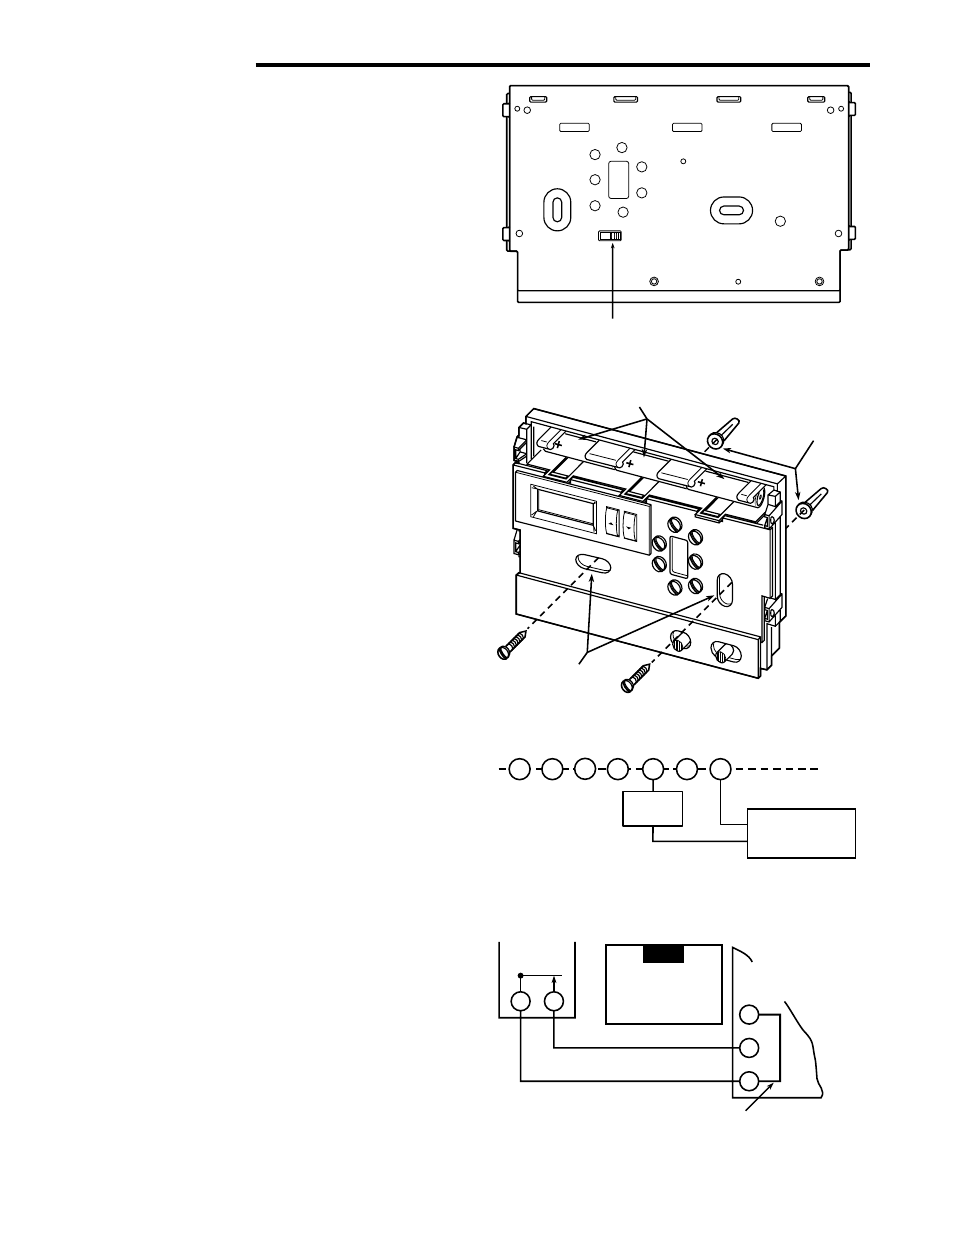 Obsolete White Rodgers Zone Valve Wiring Manual Of Diagram Taco 571 3 2 Repair Kit Elsavadorla